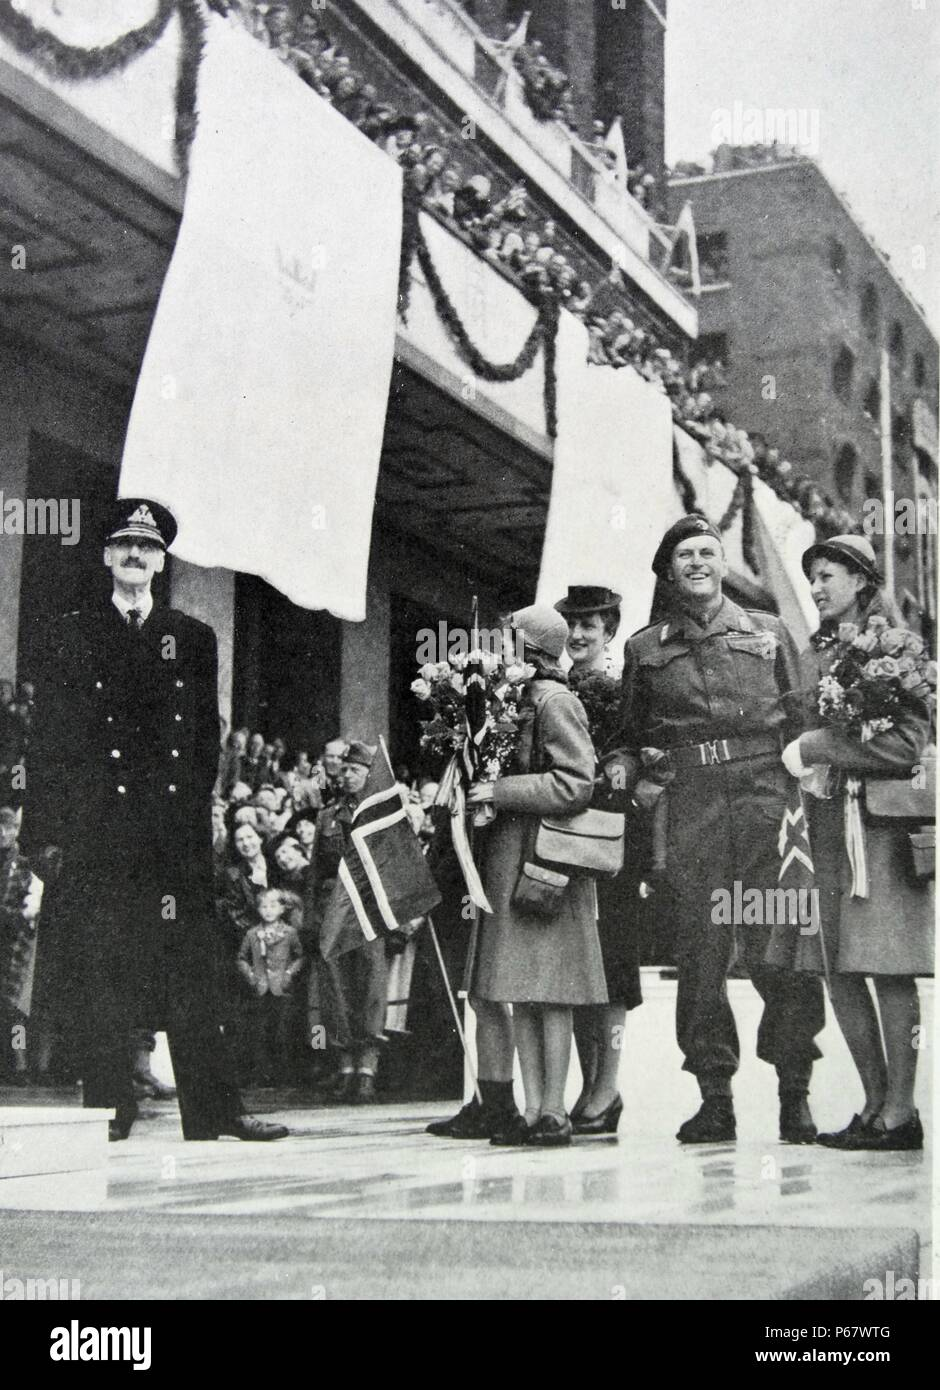 King Haakon, Crown Princess Martha, Prince Olav, and Prince Harald of Norway return home after the liberation of Norway after World War Two - Stock Image